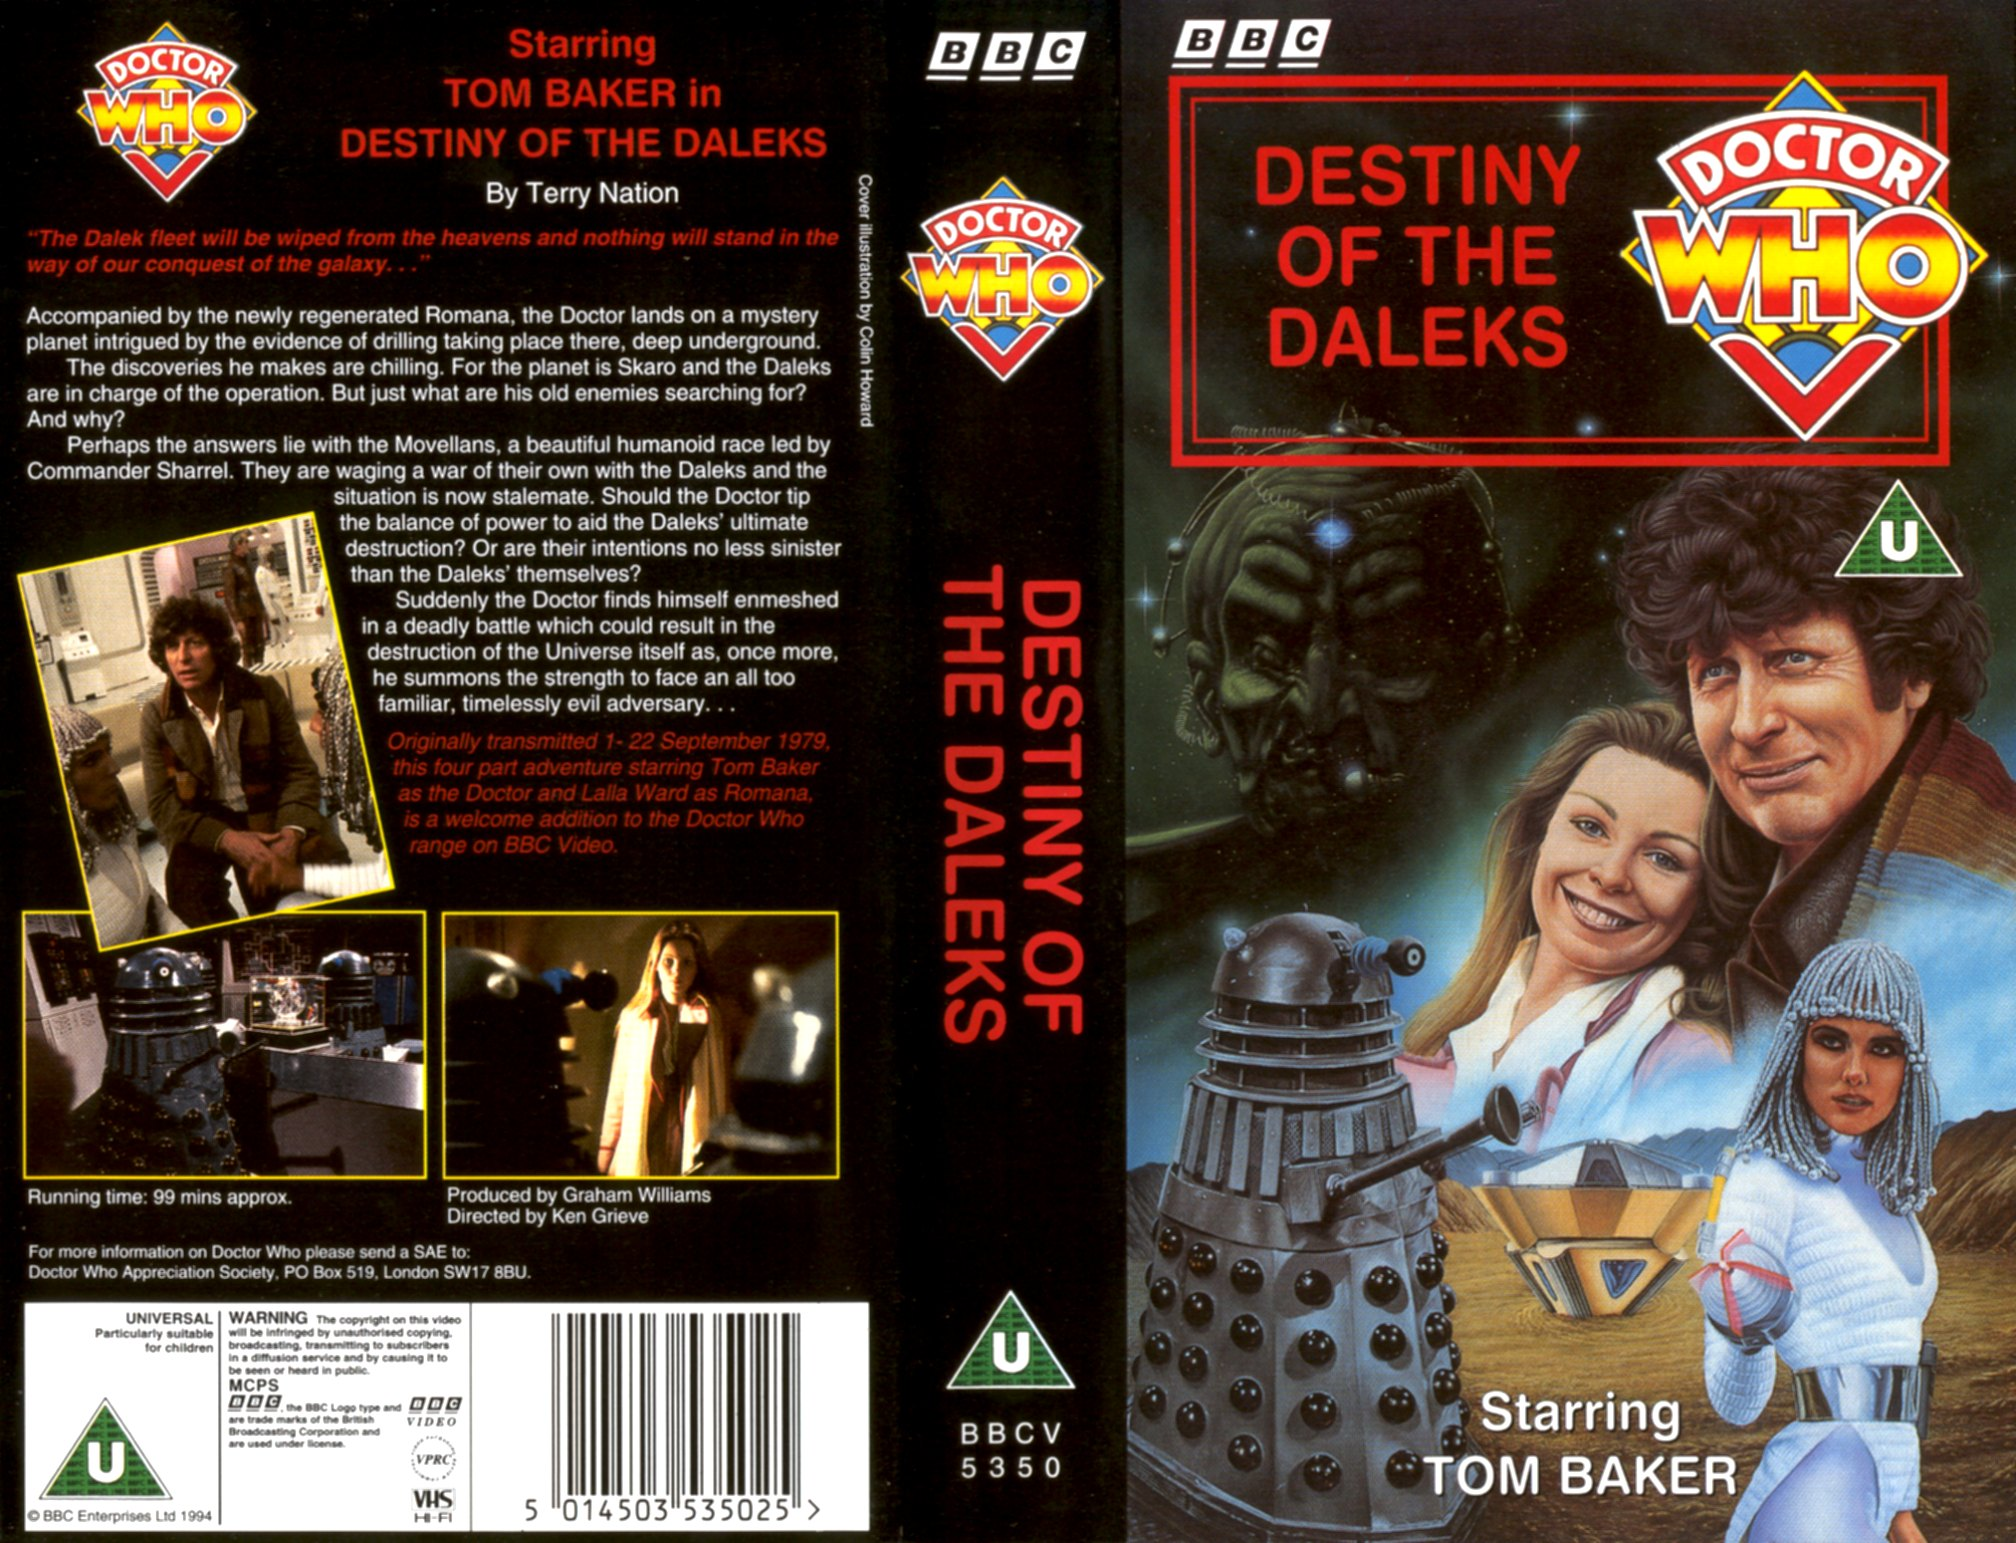 Destiny of the Daleks VHS